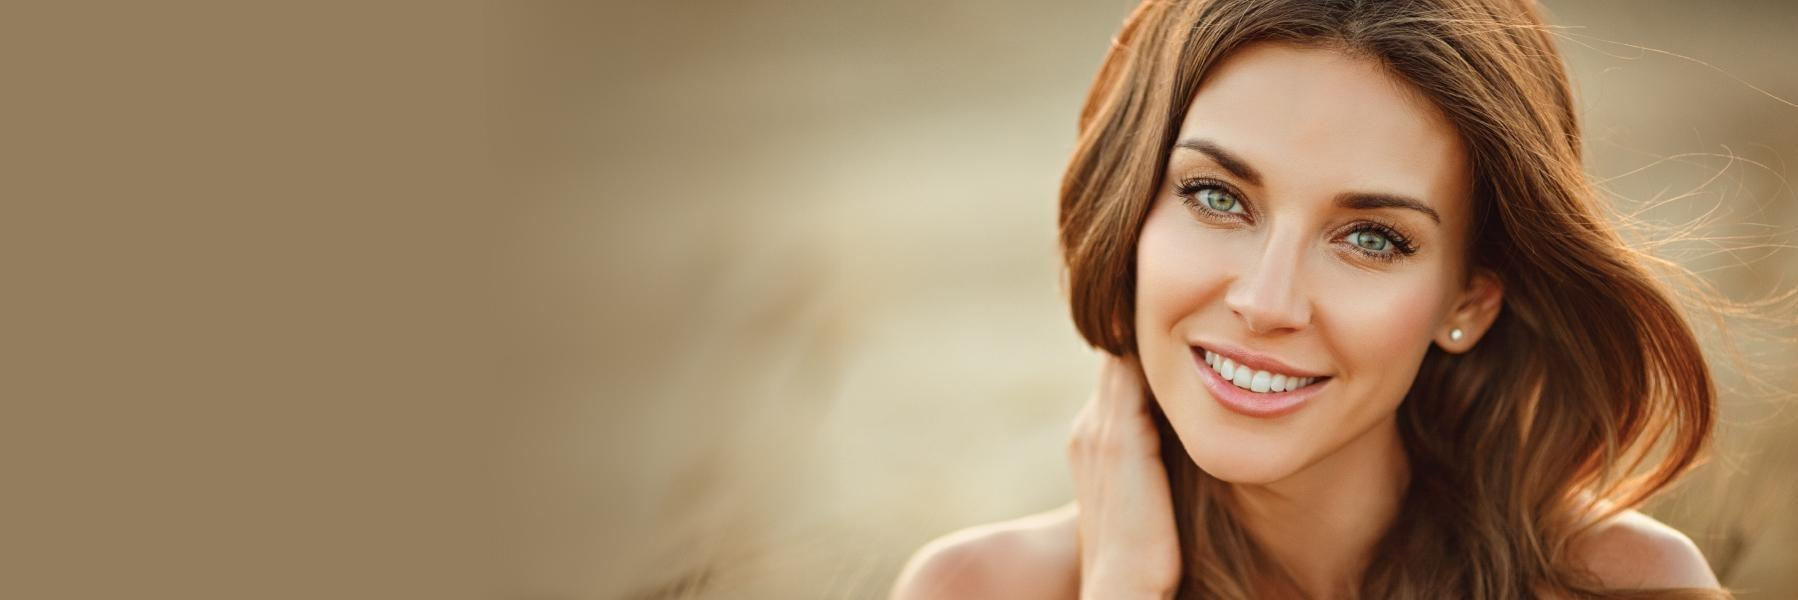 Woman with brown hair smiling l Dentist Near Me